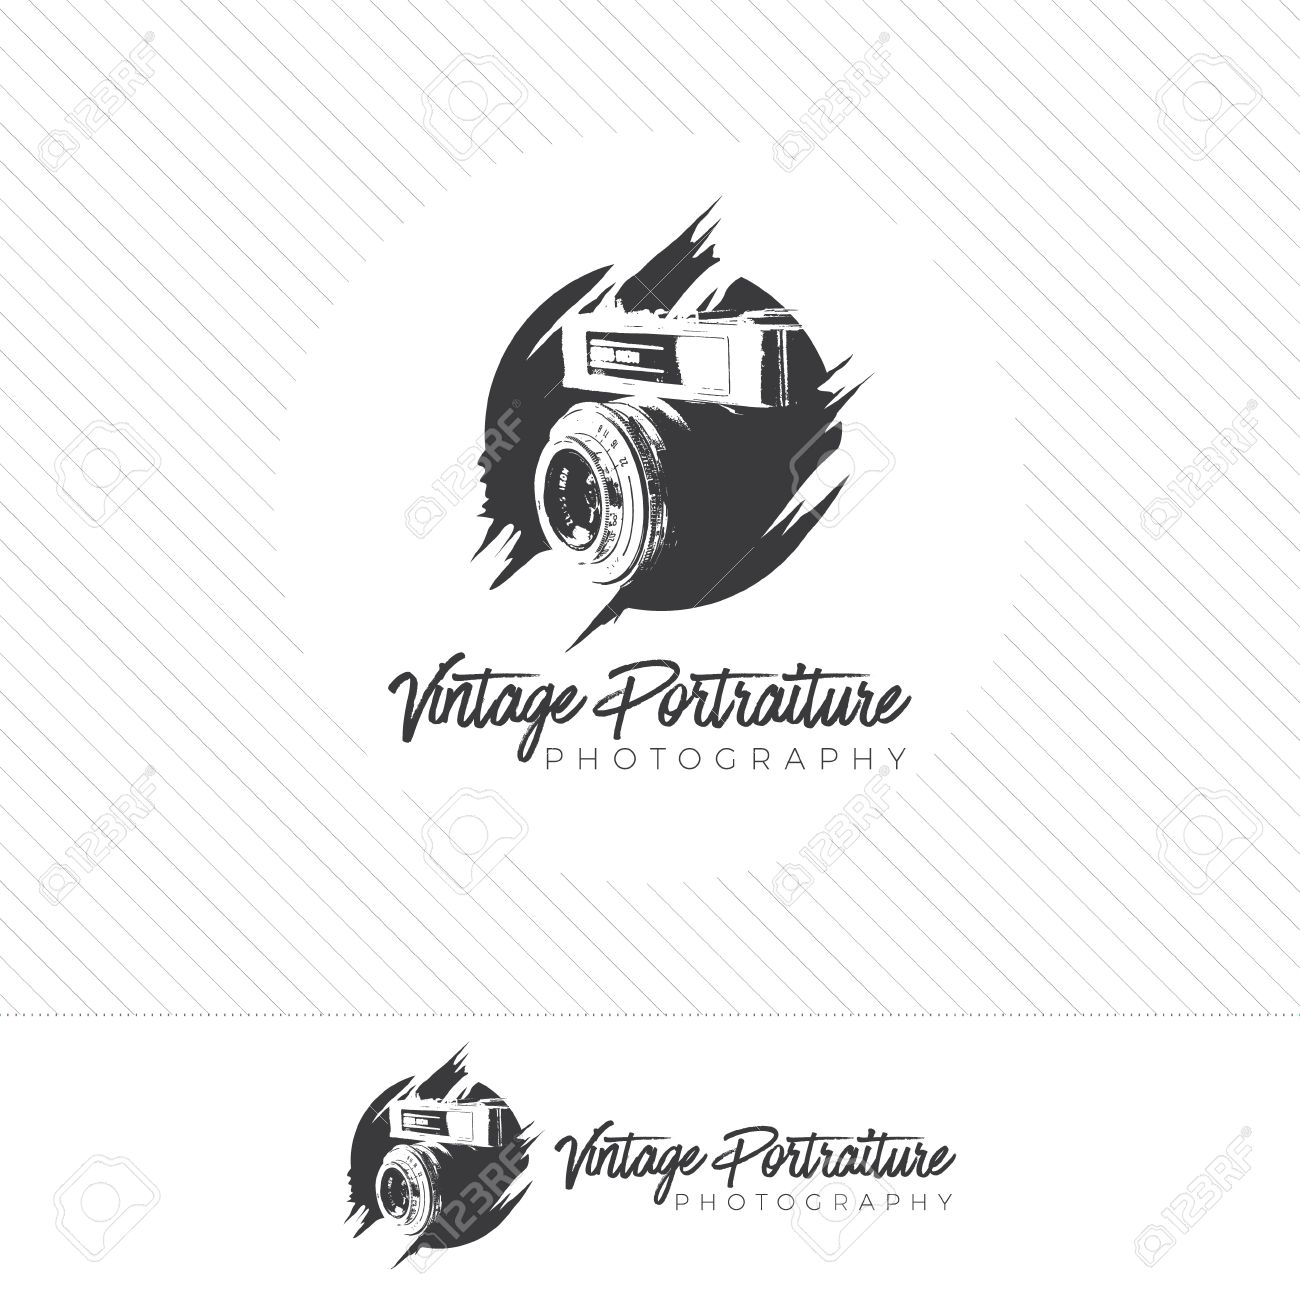 abstract silhouette photography logo. Vintage style camera icon vector with photographer holding a lens. - 71742099